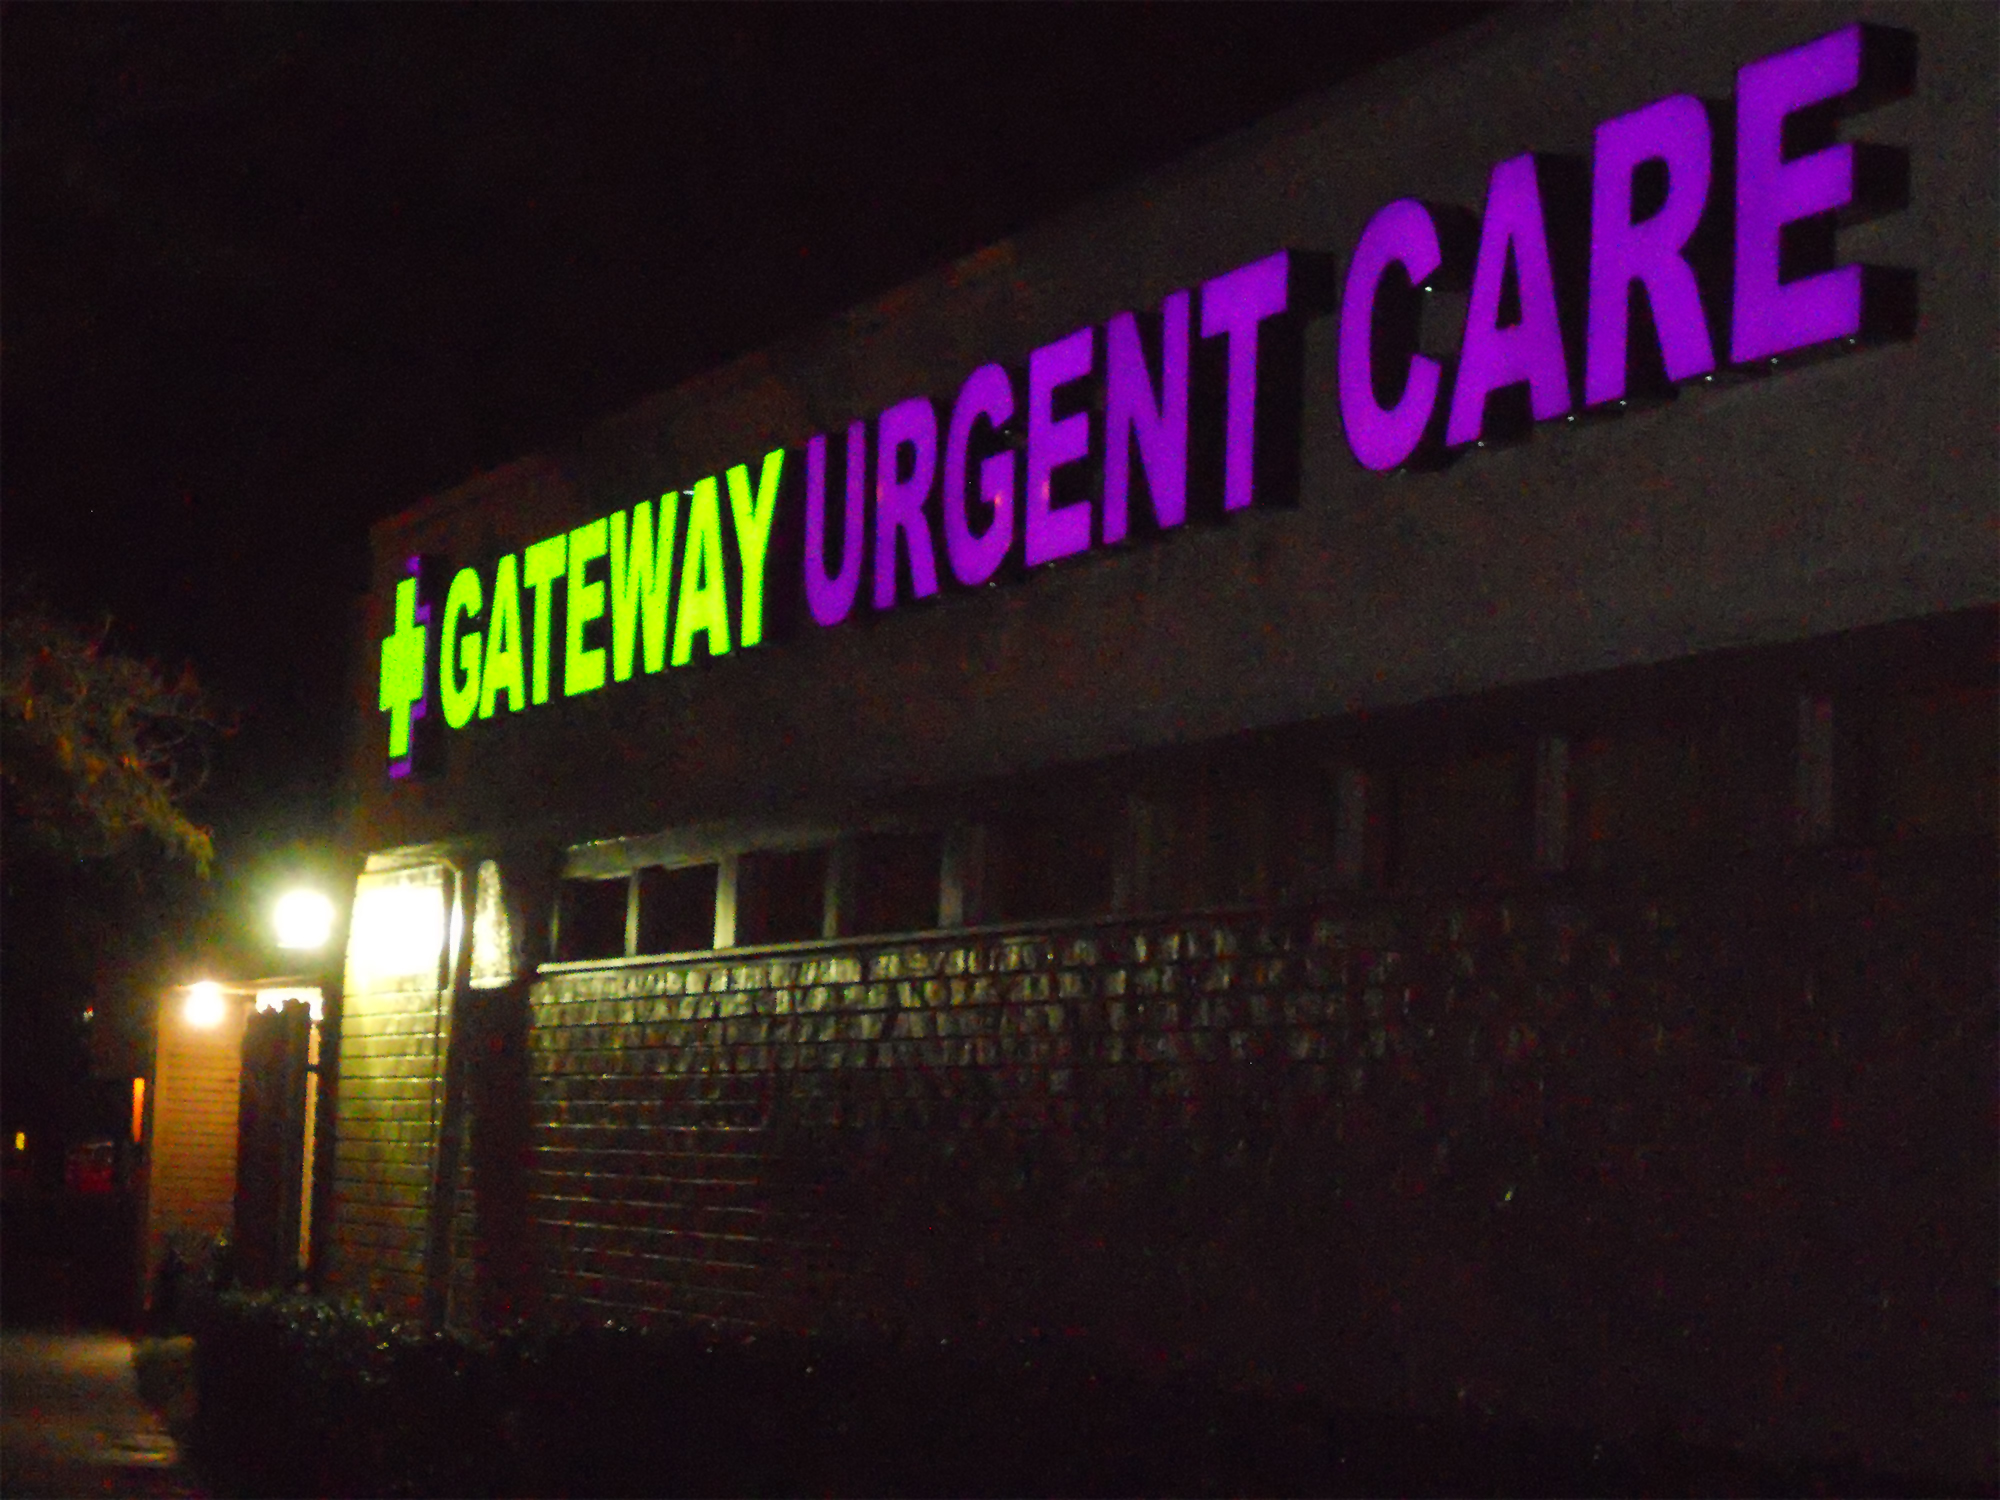 Night Light Urgent Care